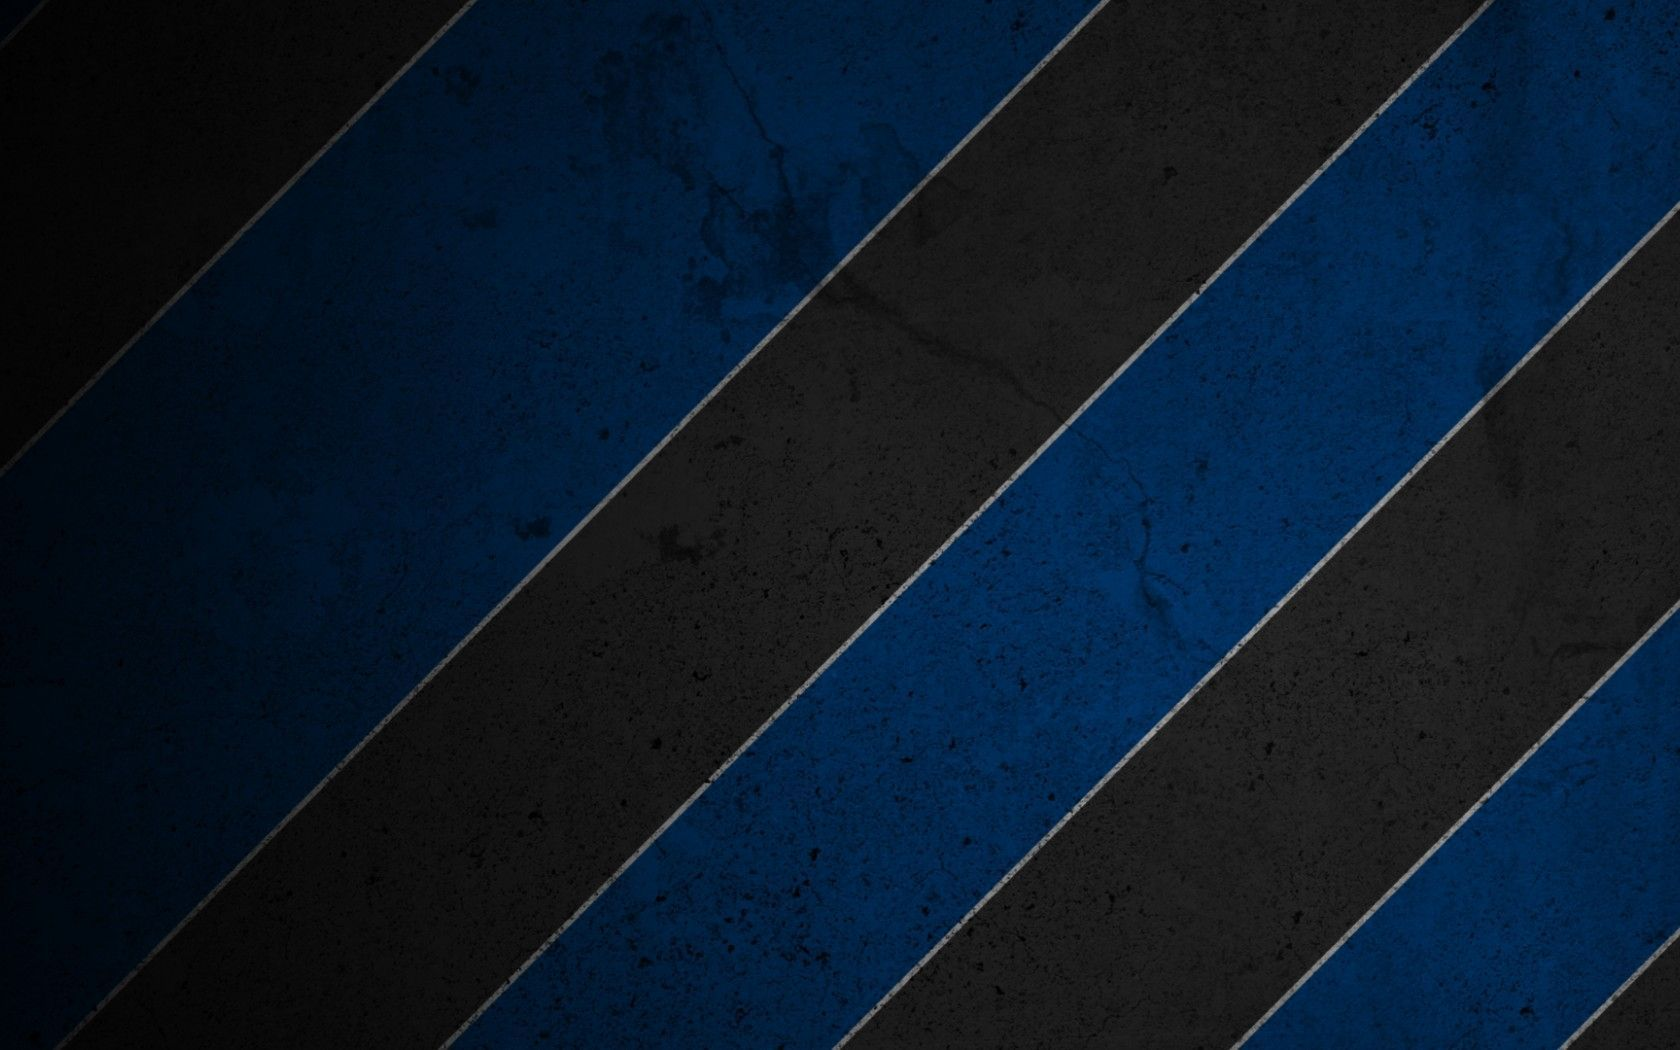 Blue And Black Wallpaper 09